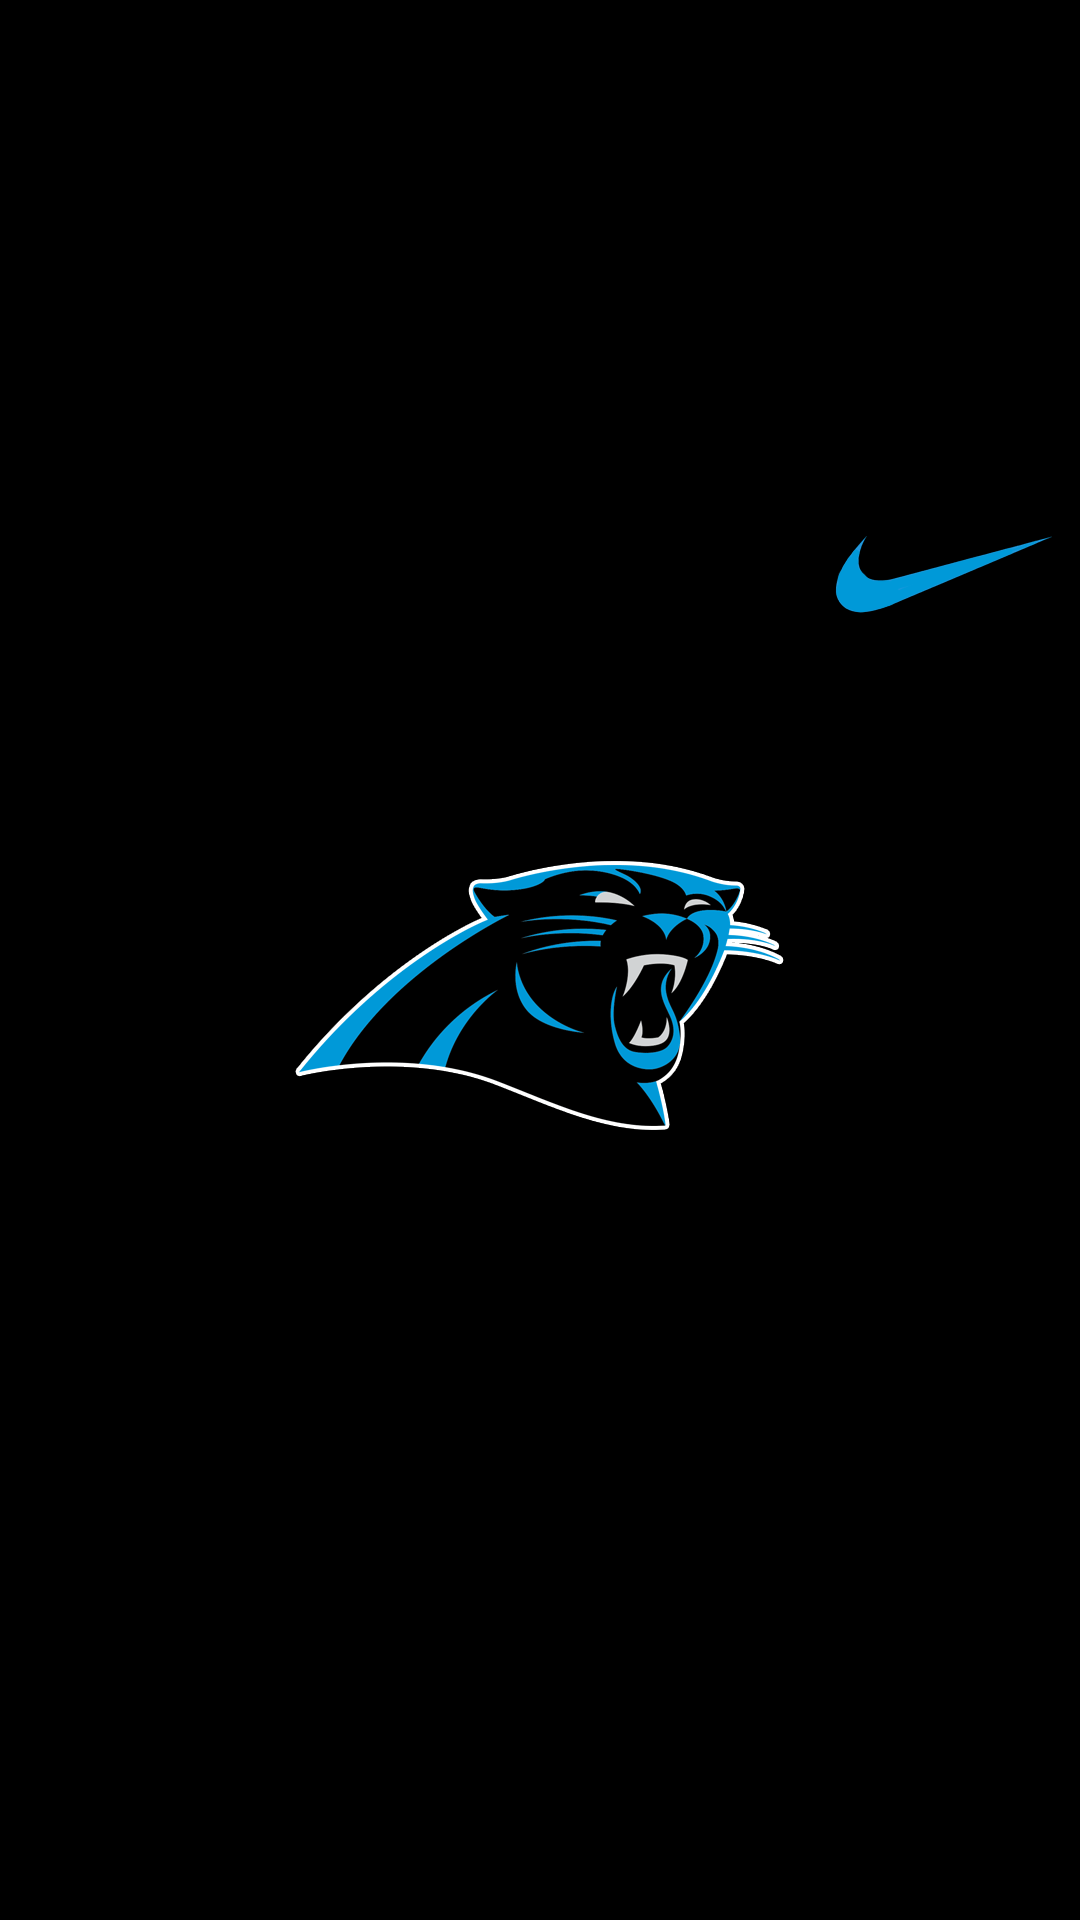 Nike Iphone Wallpapers Top Free Nike Iphone Backgrounds Wallpaperaccess